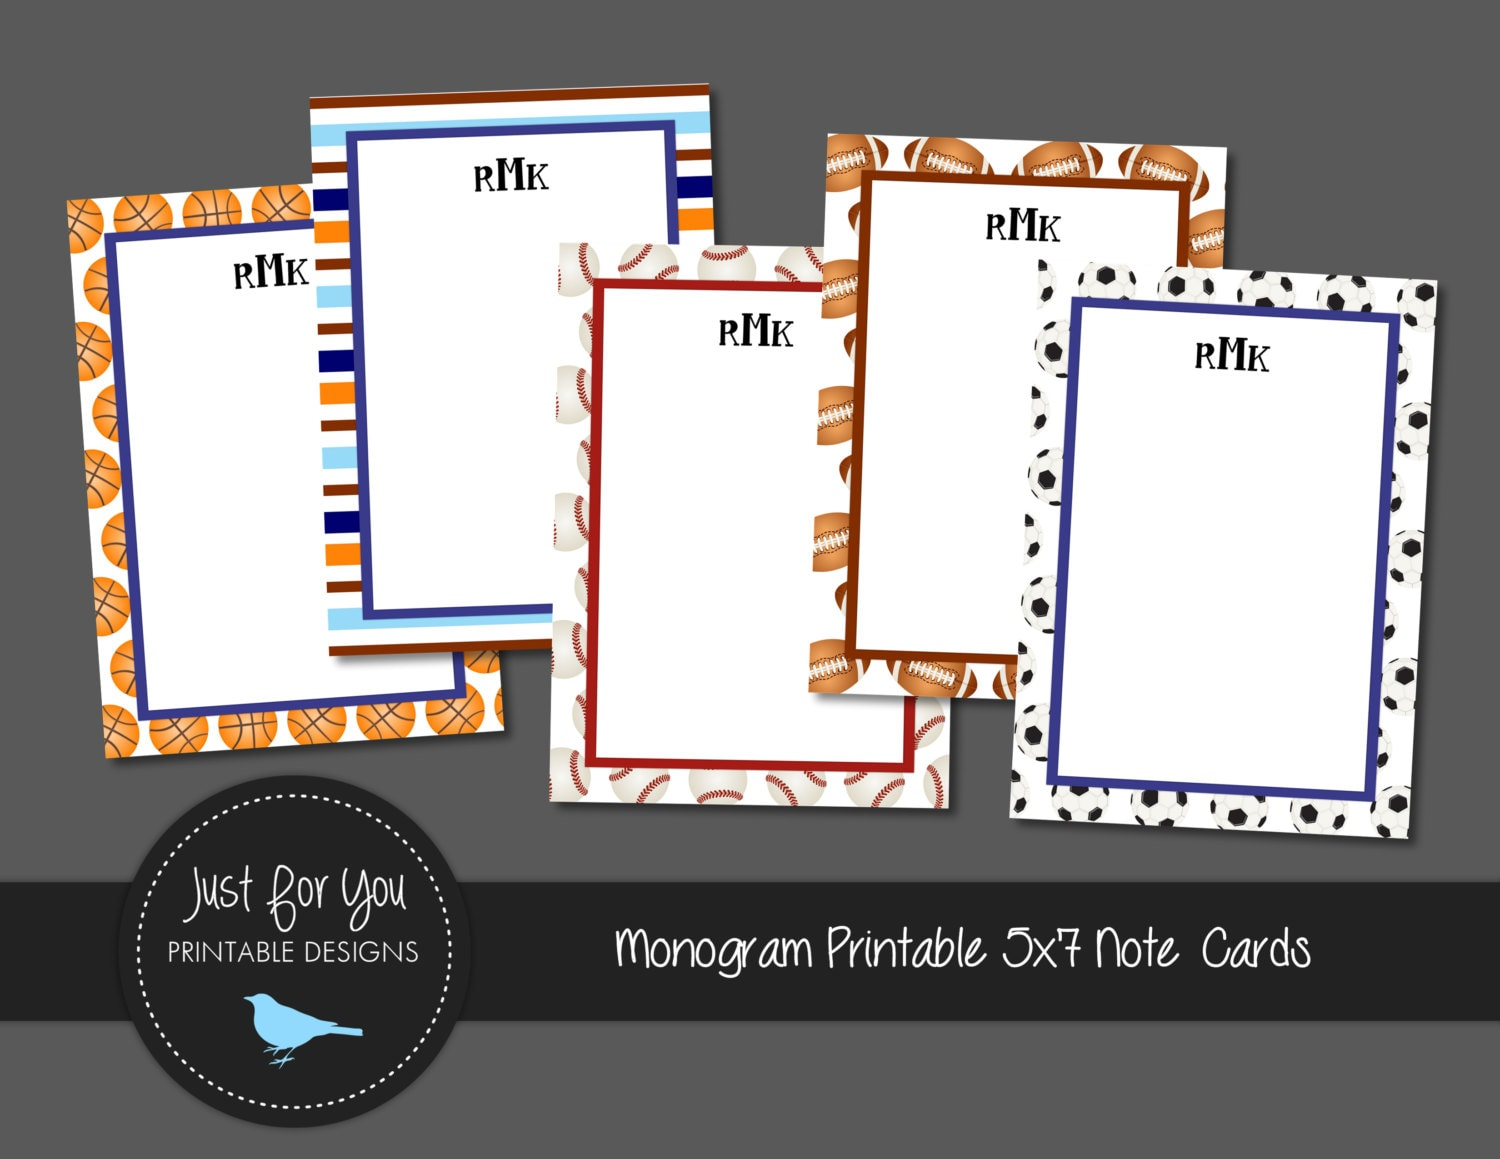 sports themed printable stationary note cards with monogram 5x7